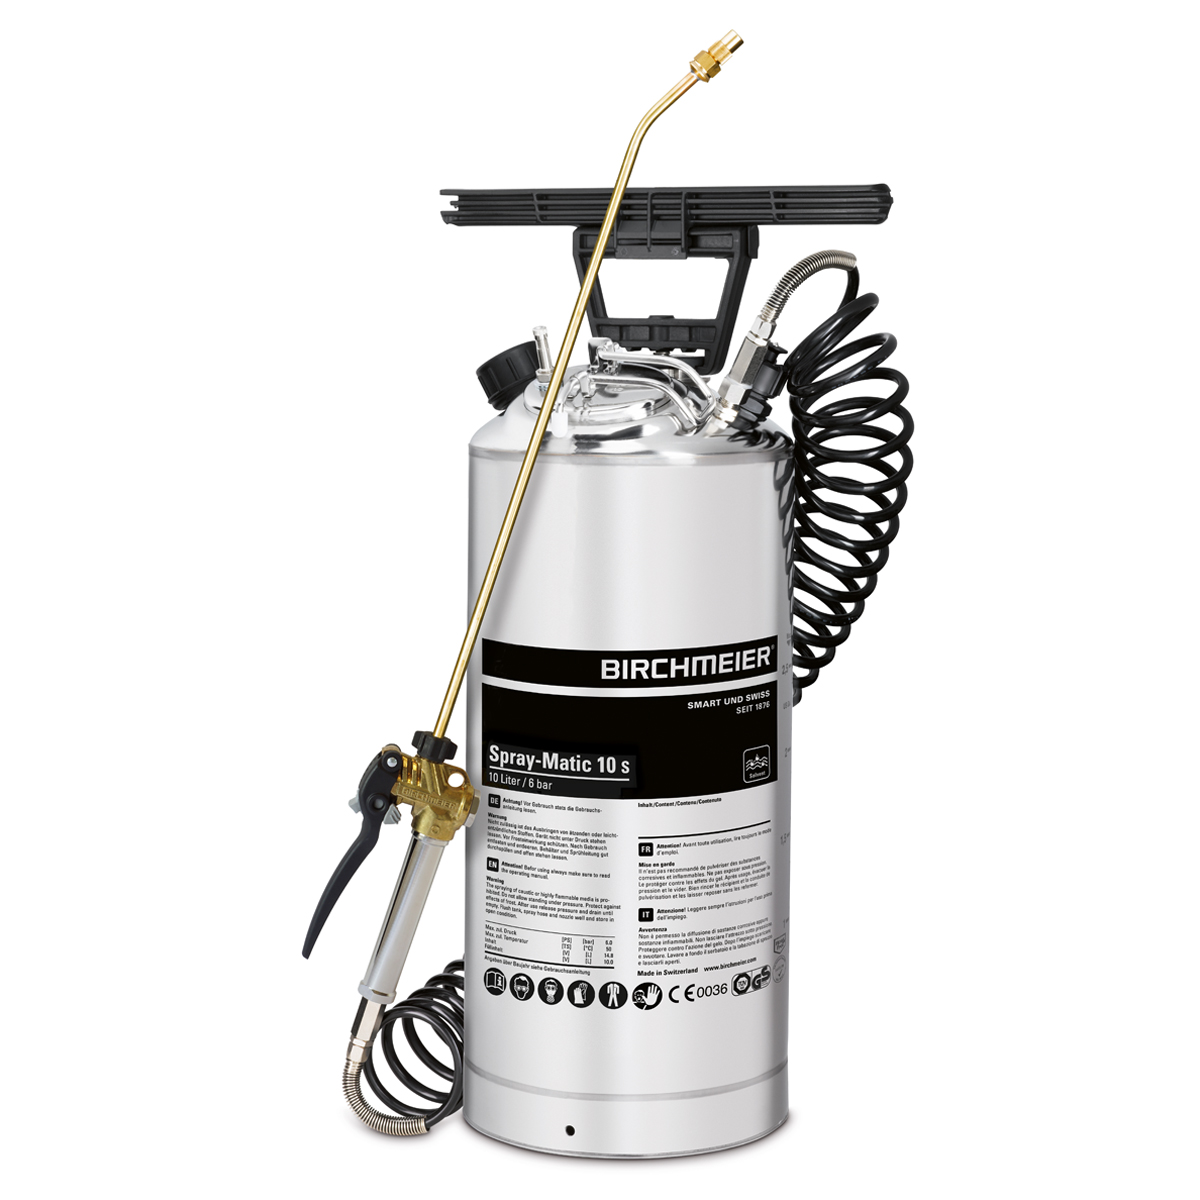 Spray-Matic 10 S with hand pump and compressed-air union